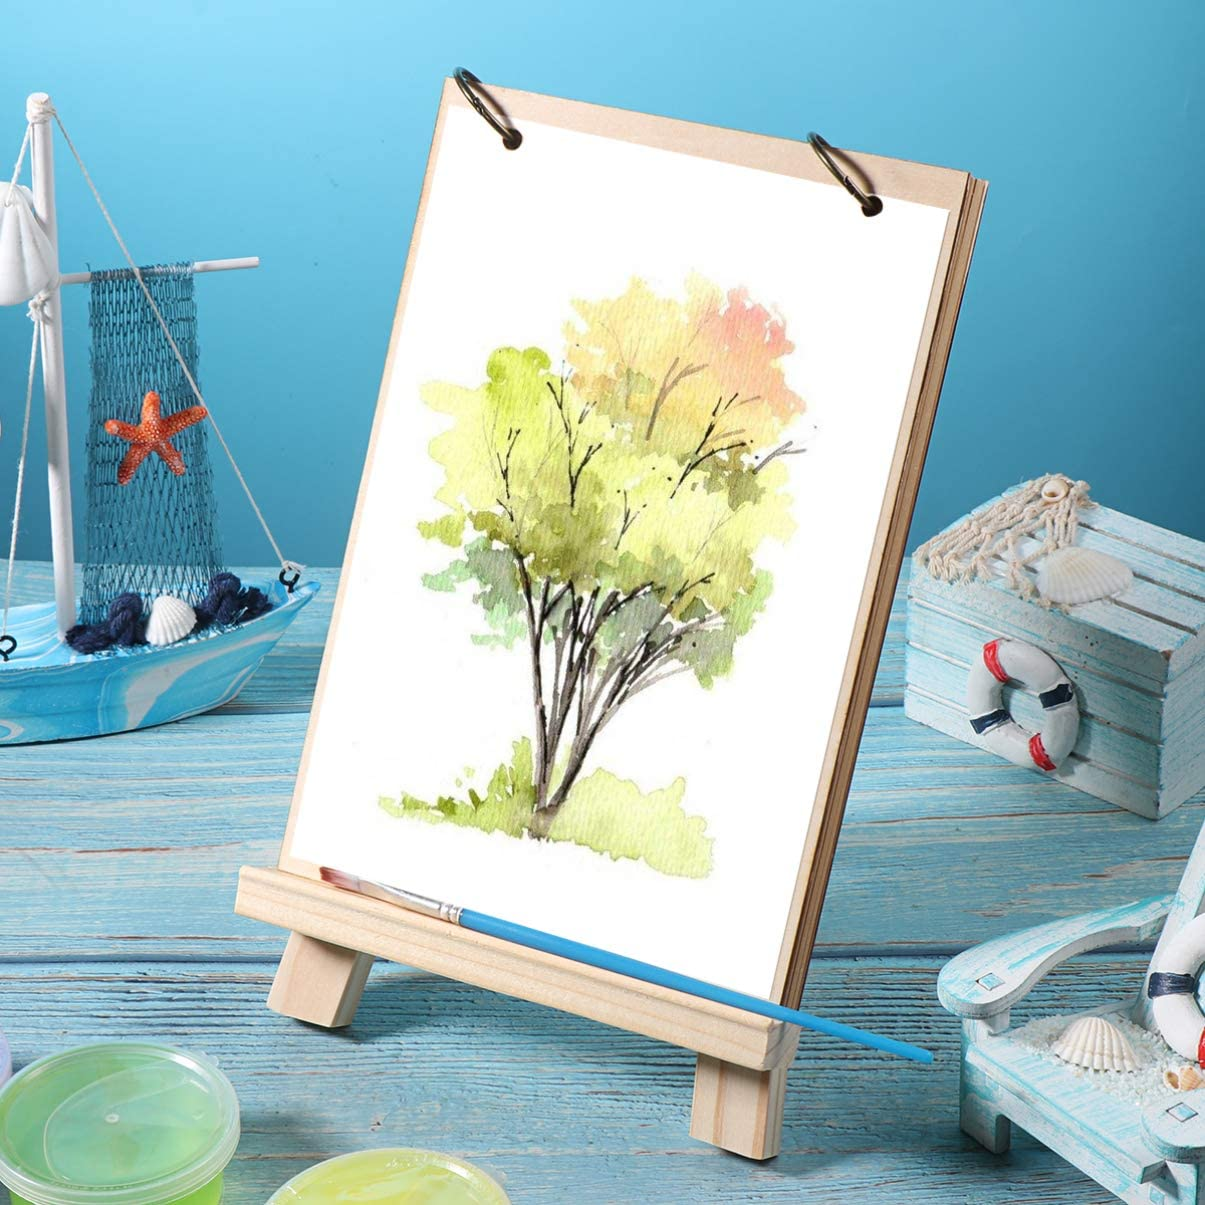 15x20cm TOYANDONA 1PC Painting Easel Display Stand Tabletop Photo Stand Natural Wood Photo A-Frame Painting Easel for Kids Students Artist Painting